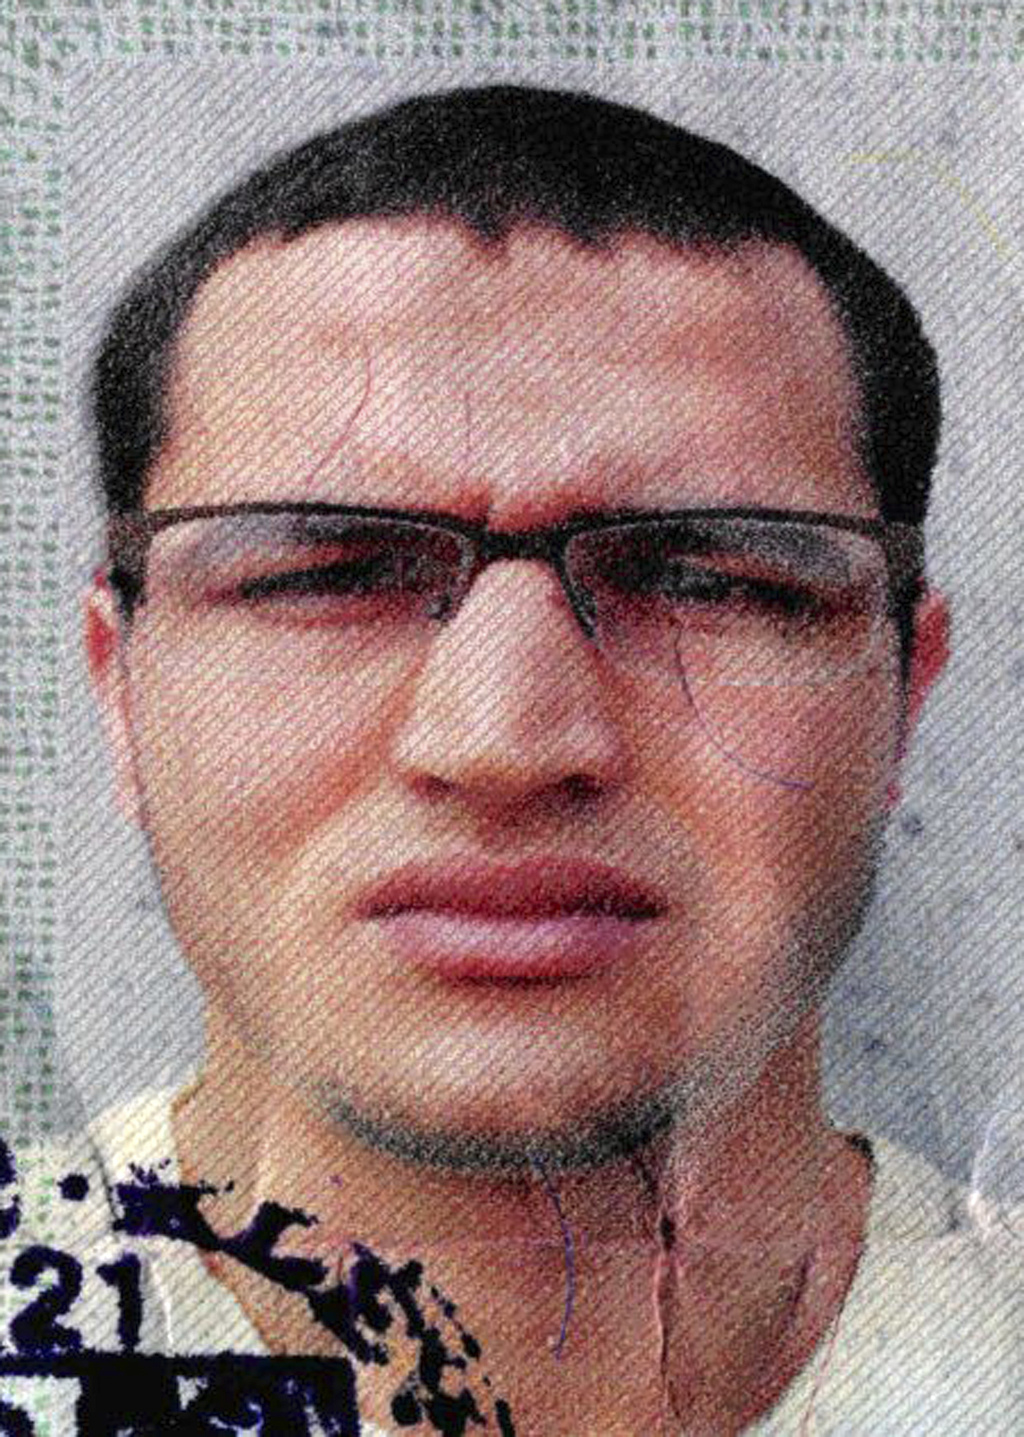 The photo issued by German federal police on Wednesday, Dec. 21, 2016 shows 24-year-old Tunisian Anis Amri on a photo that was used on ...